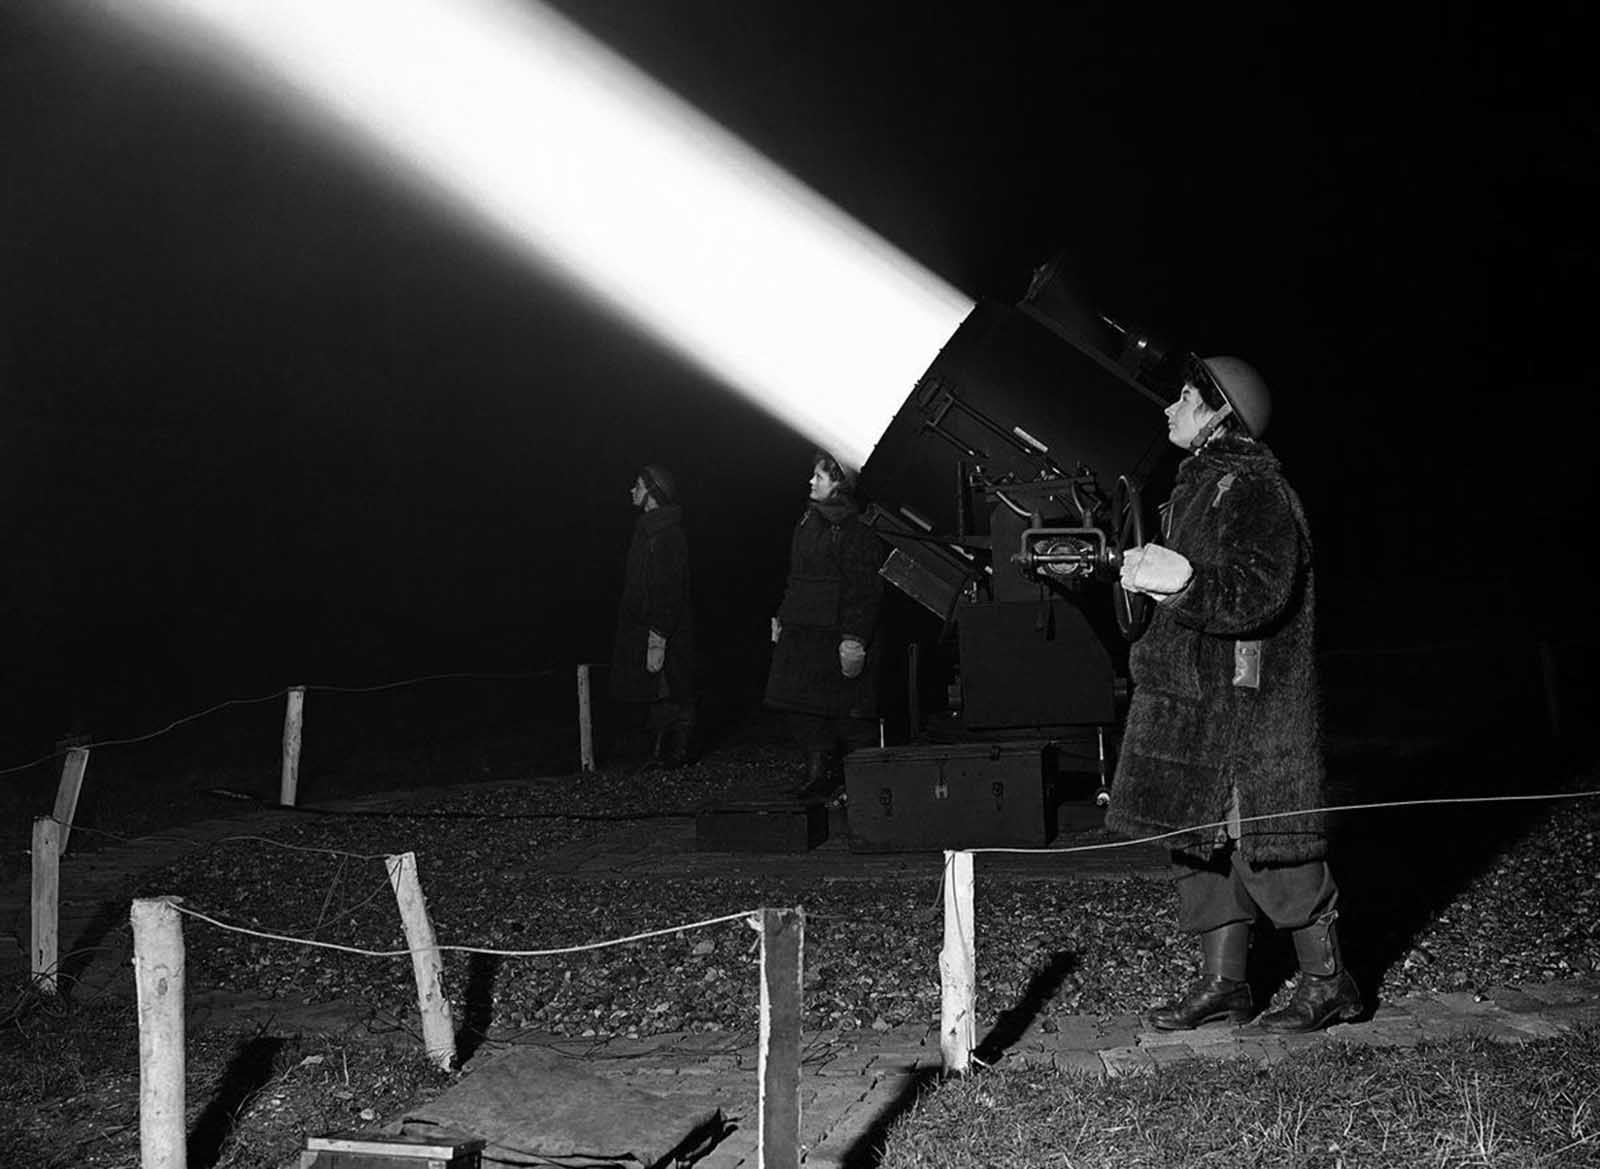 An Auxiliary Territorial Service girl crew, dressed in warm winter coats, works a searchlight near London, on January 19, 1943, trying to find German bombers for the anti-aircraft guns to hit.